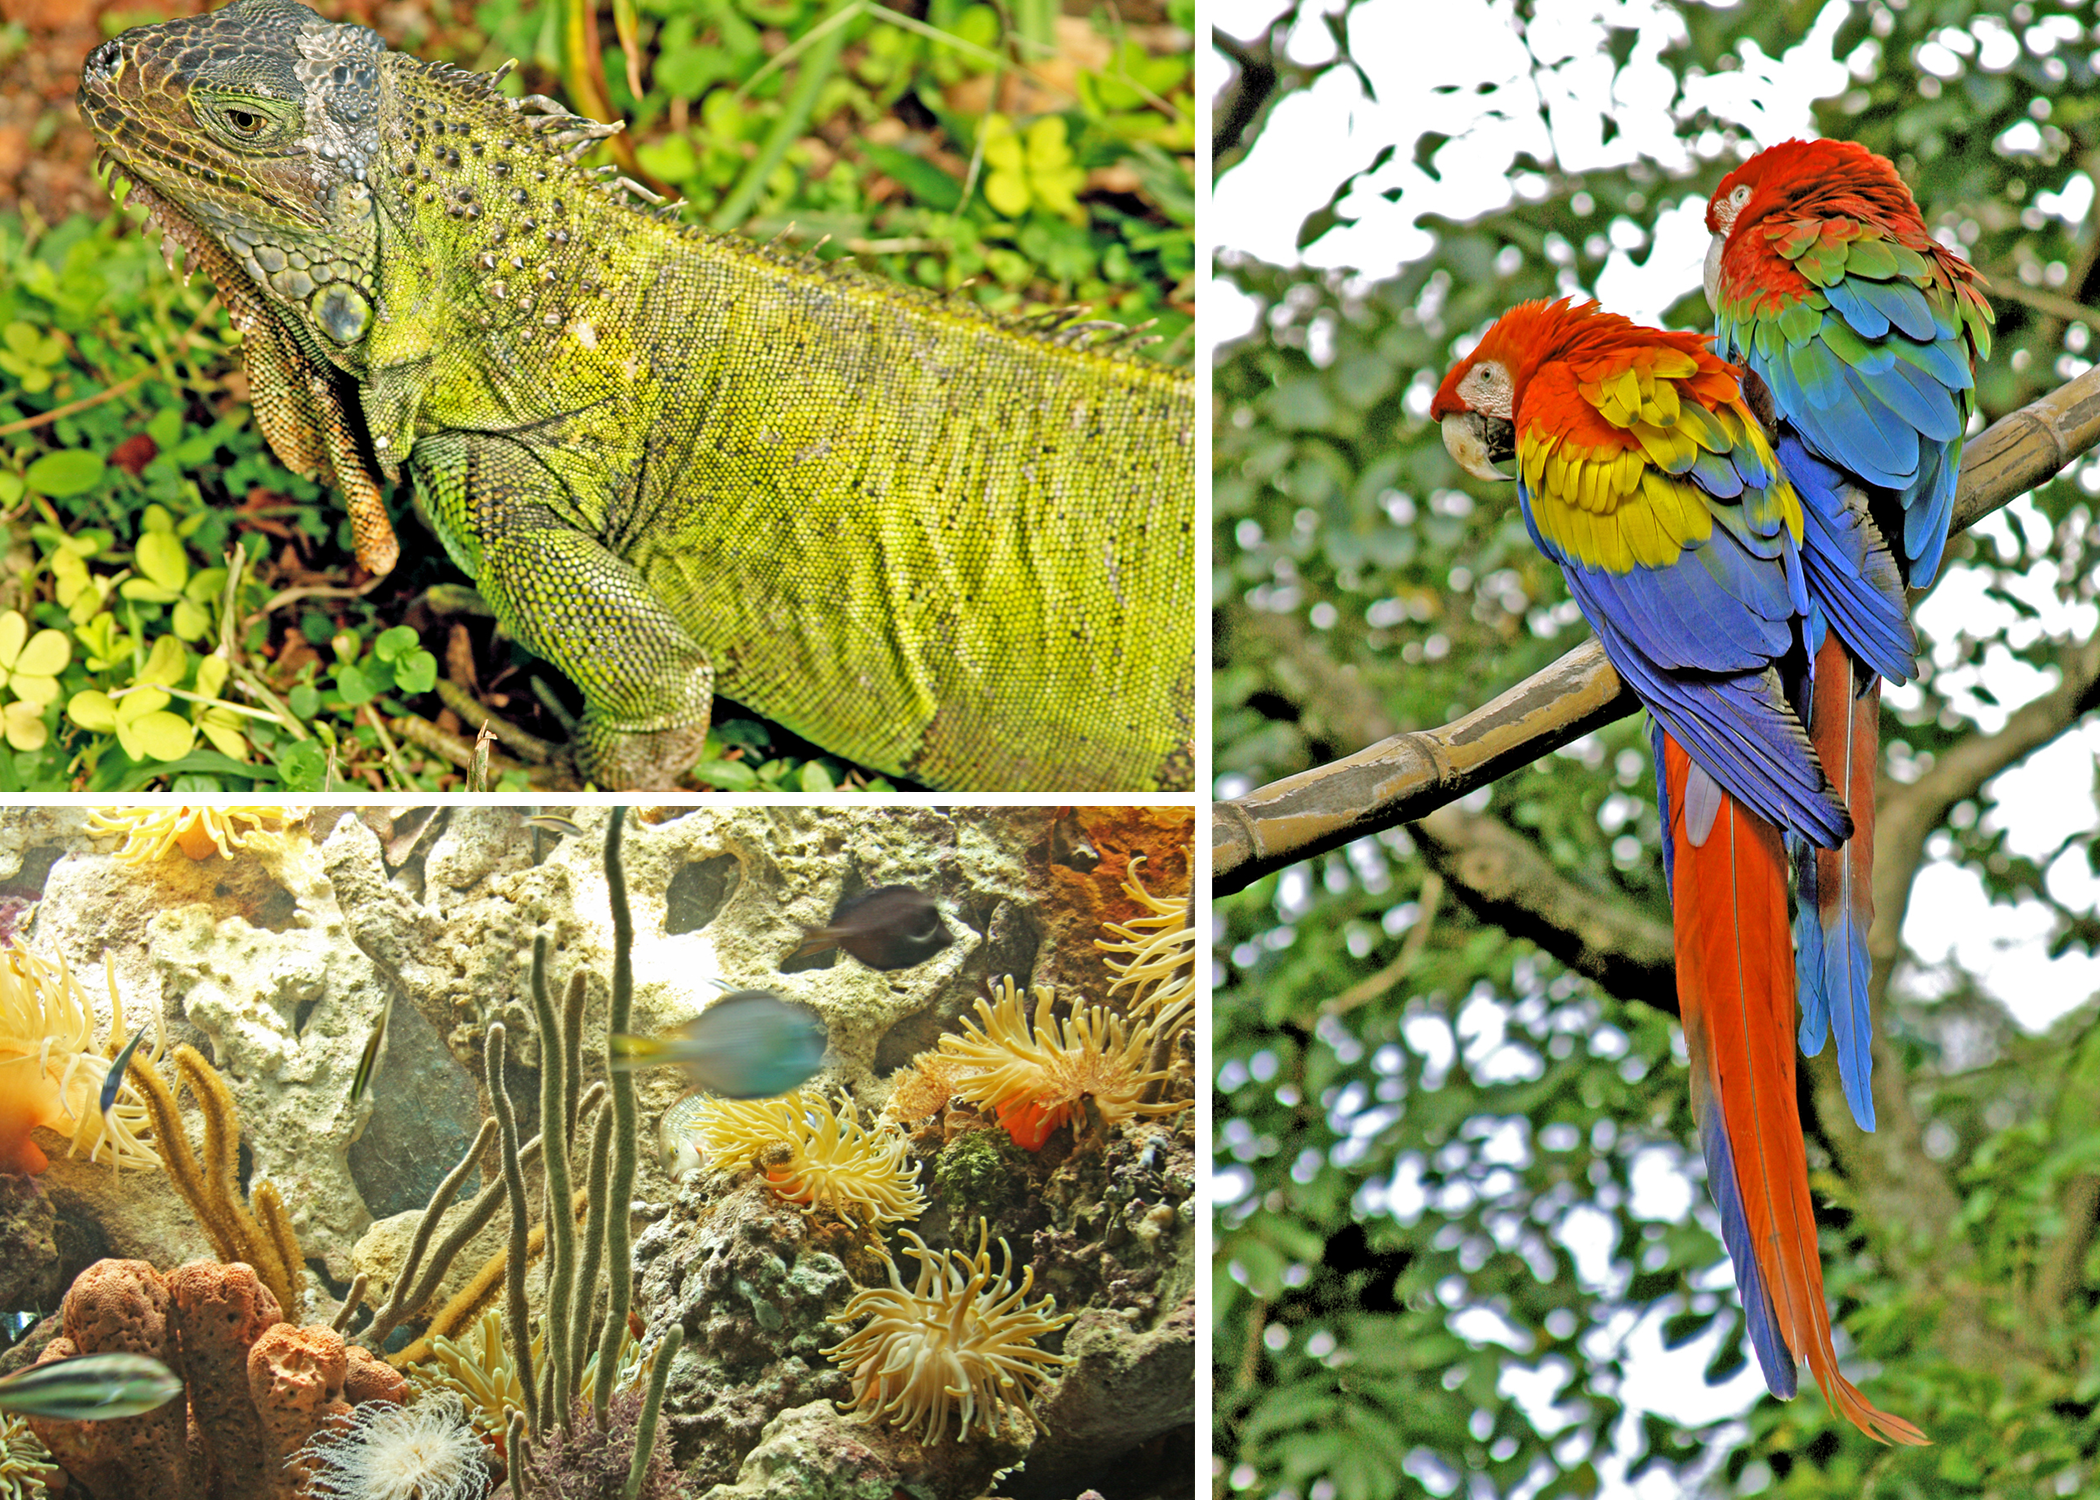 Photos of iguana, aves and fish from Colombia